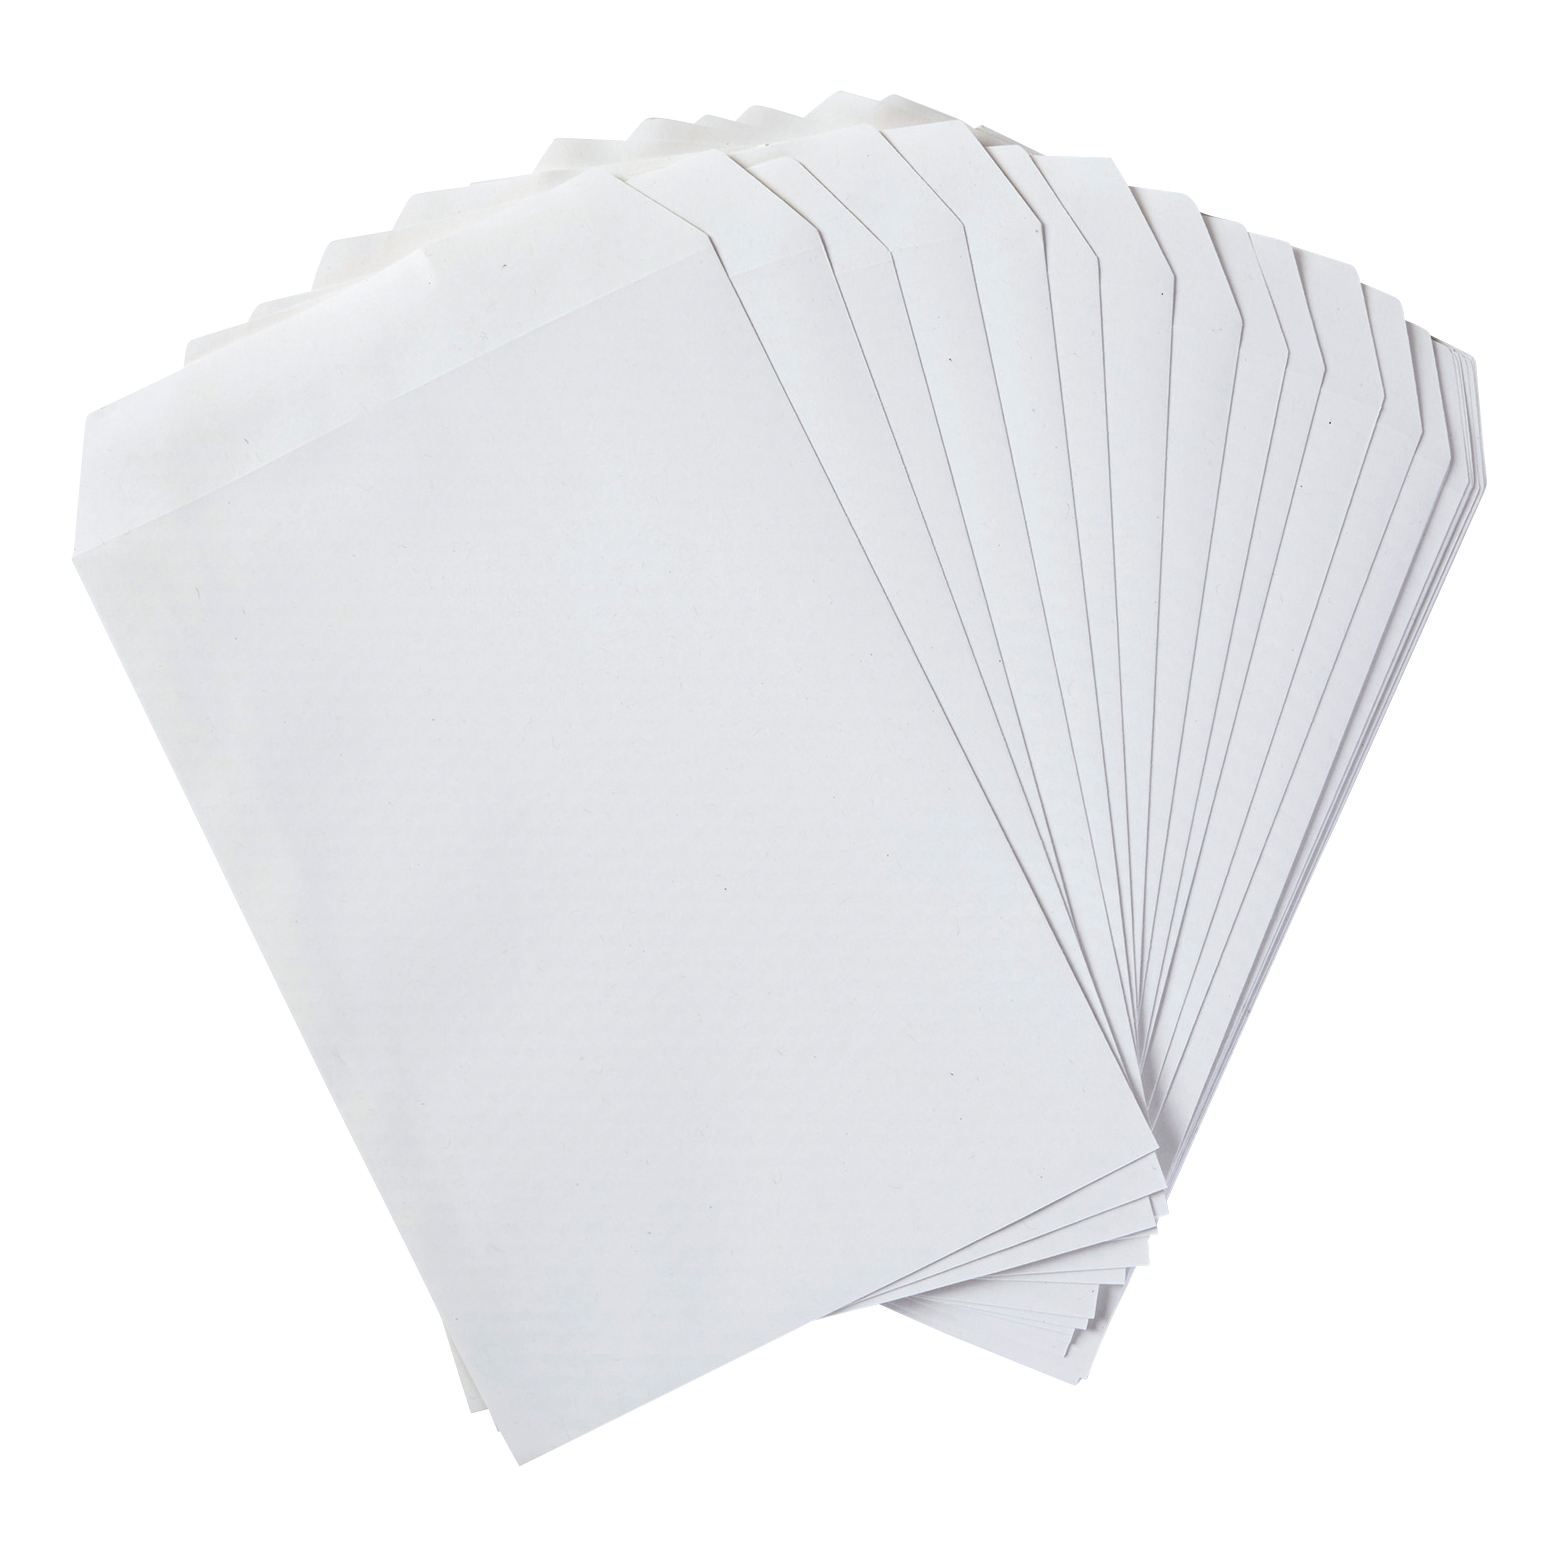 5 Star Eco Envelopes Recycled Pocket Self Seal 90gsm C5 229x162mm White Pack 500